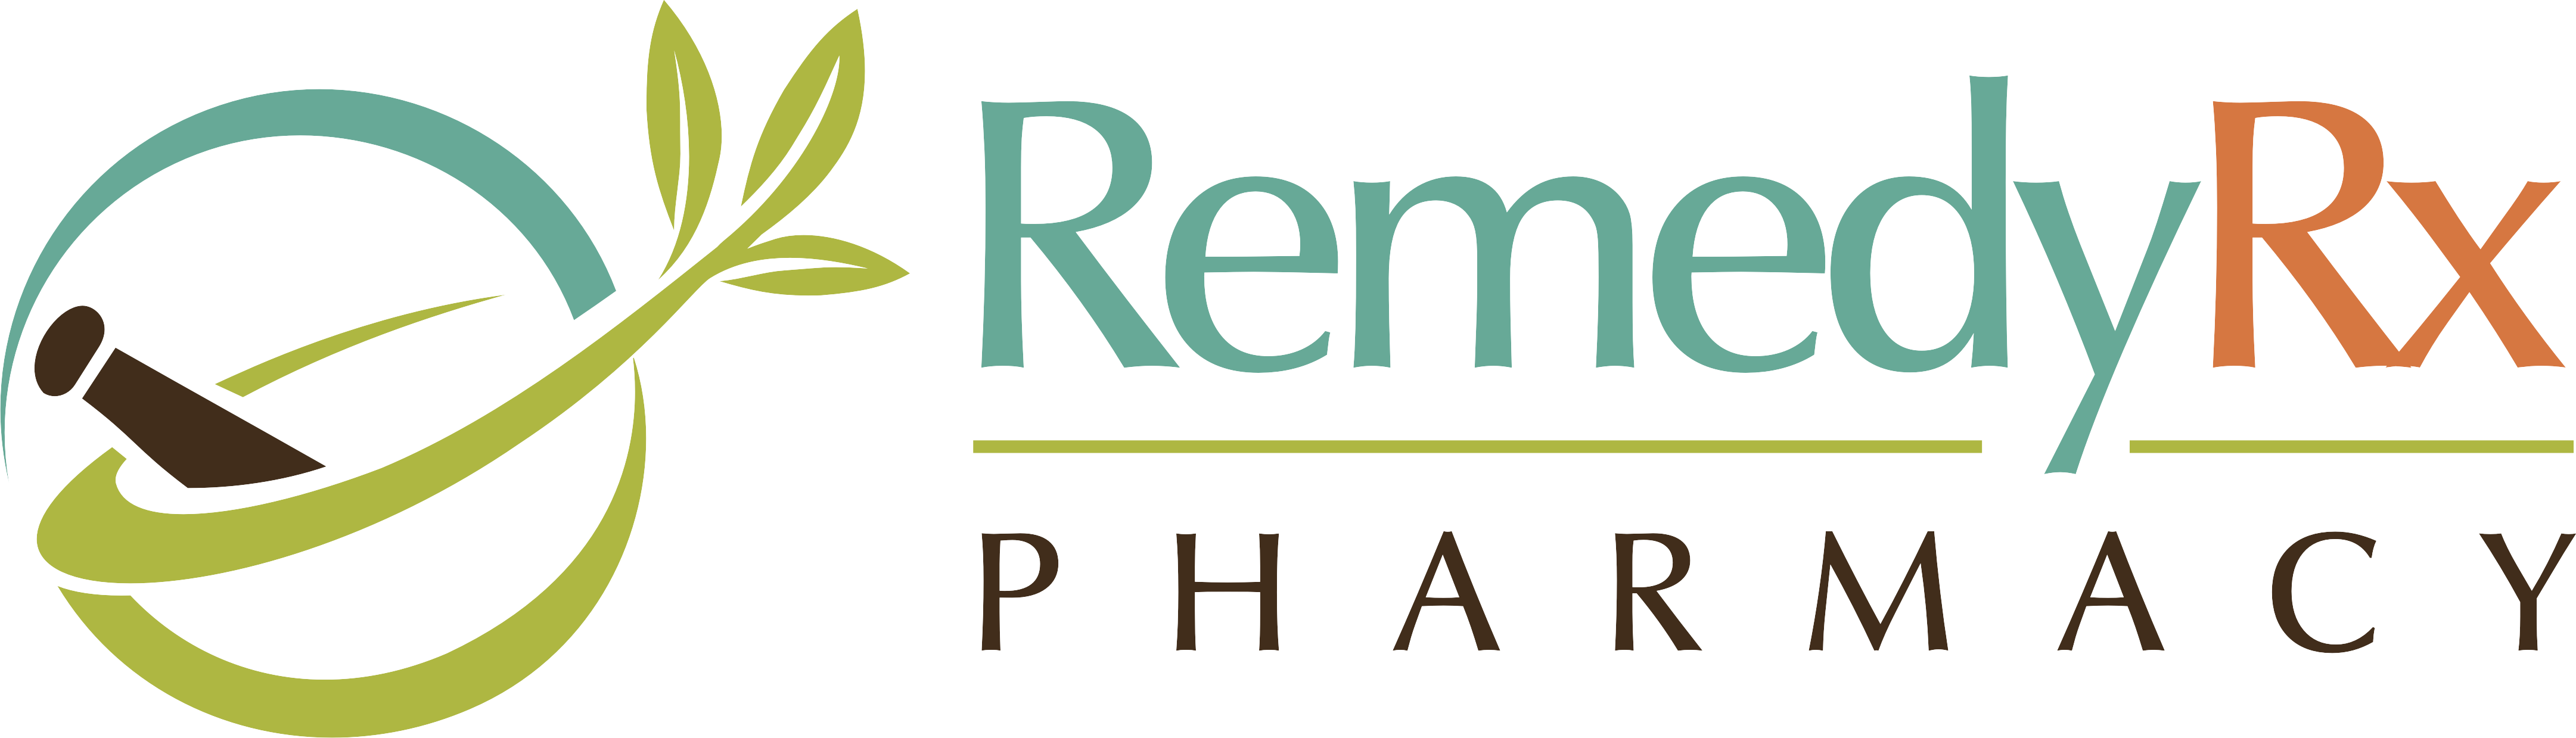 Remedy Rx Pharmacy & Compounding